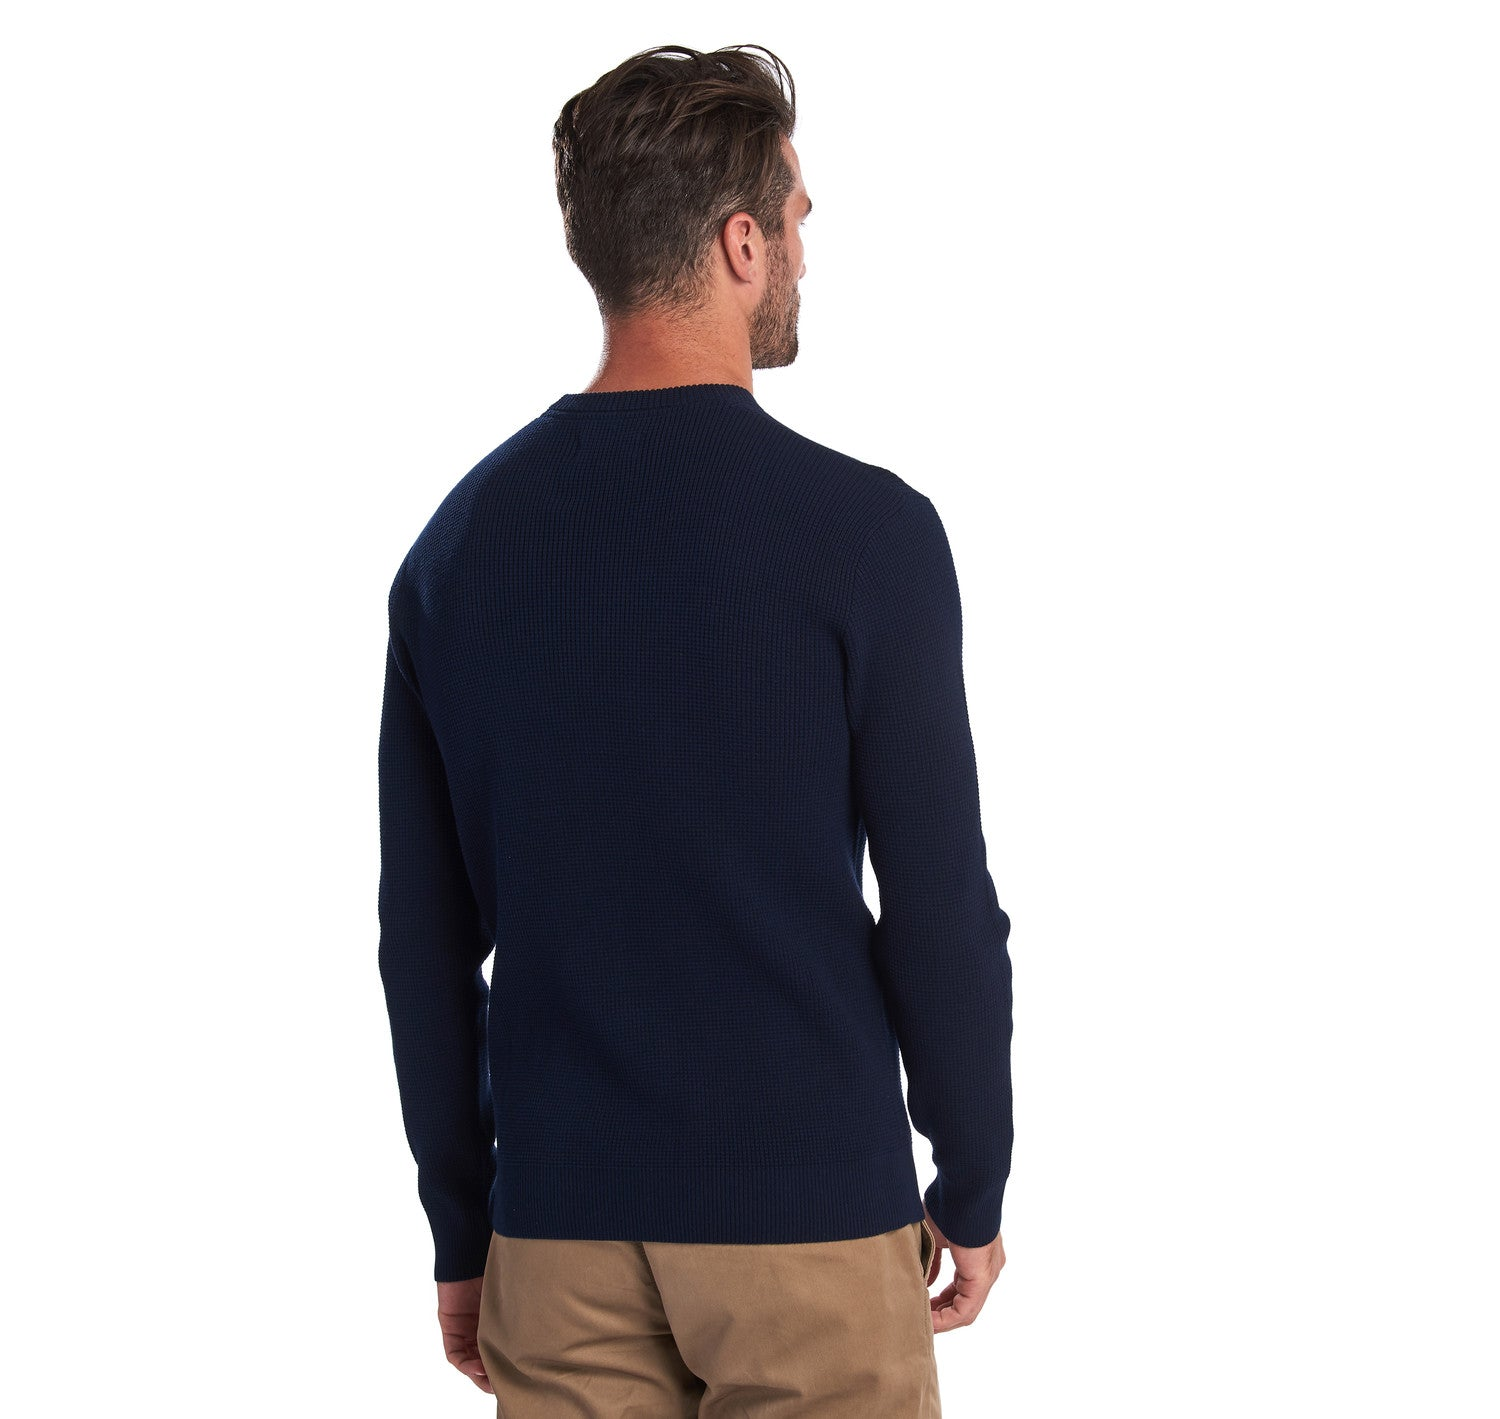 Barbour Fjord Crew Neck Sweater for Men in Navy